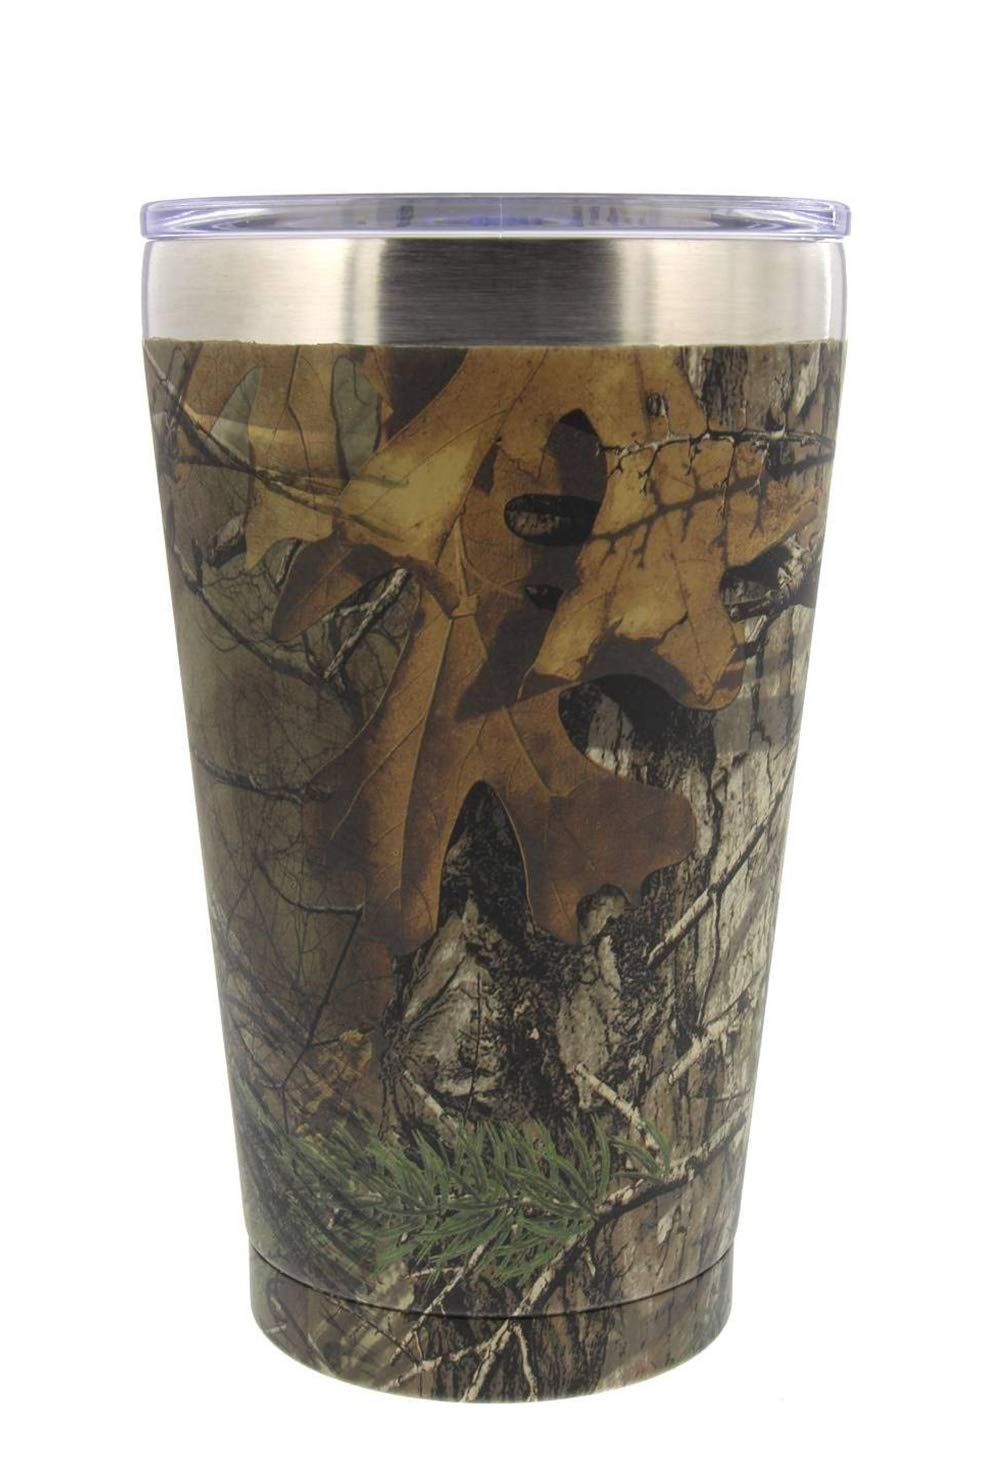 Reduce Cold-1 Insulated Tumbler Cup with Clear Lid - Pint Size, Camo Design, 16 oz, Keeps Drinks Hot / Cold - Stainless Steel, Ideal for Outdoors / Travel - Fill Mug with Coffee, Water, Beer or Soda